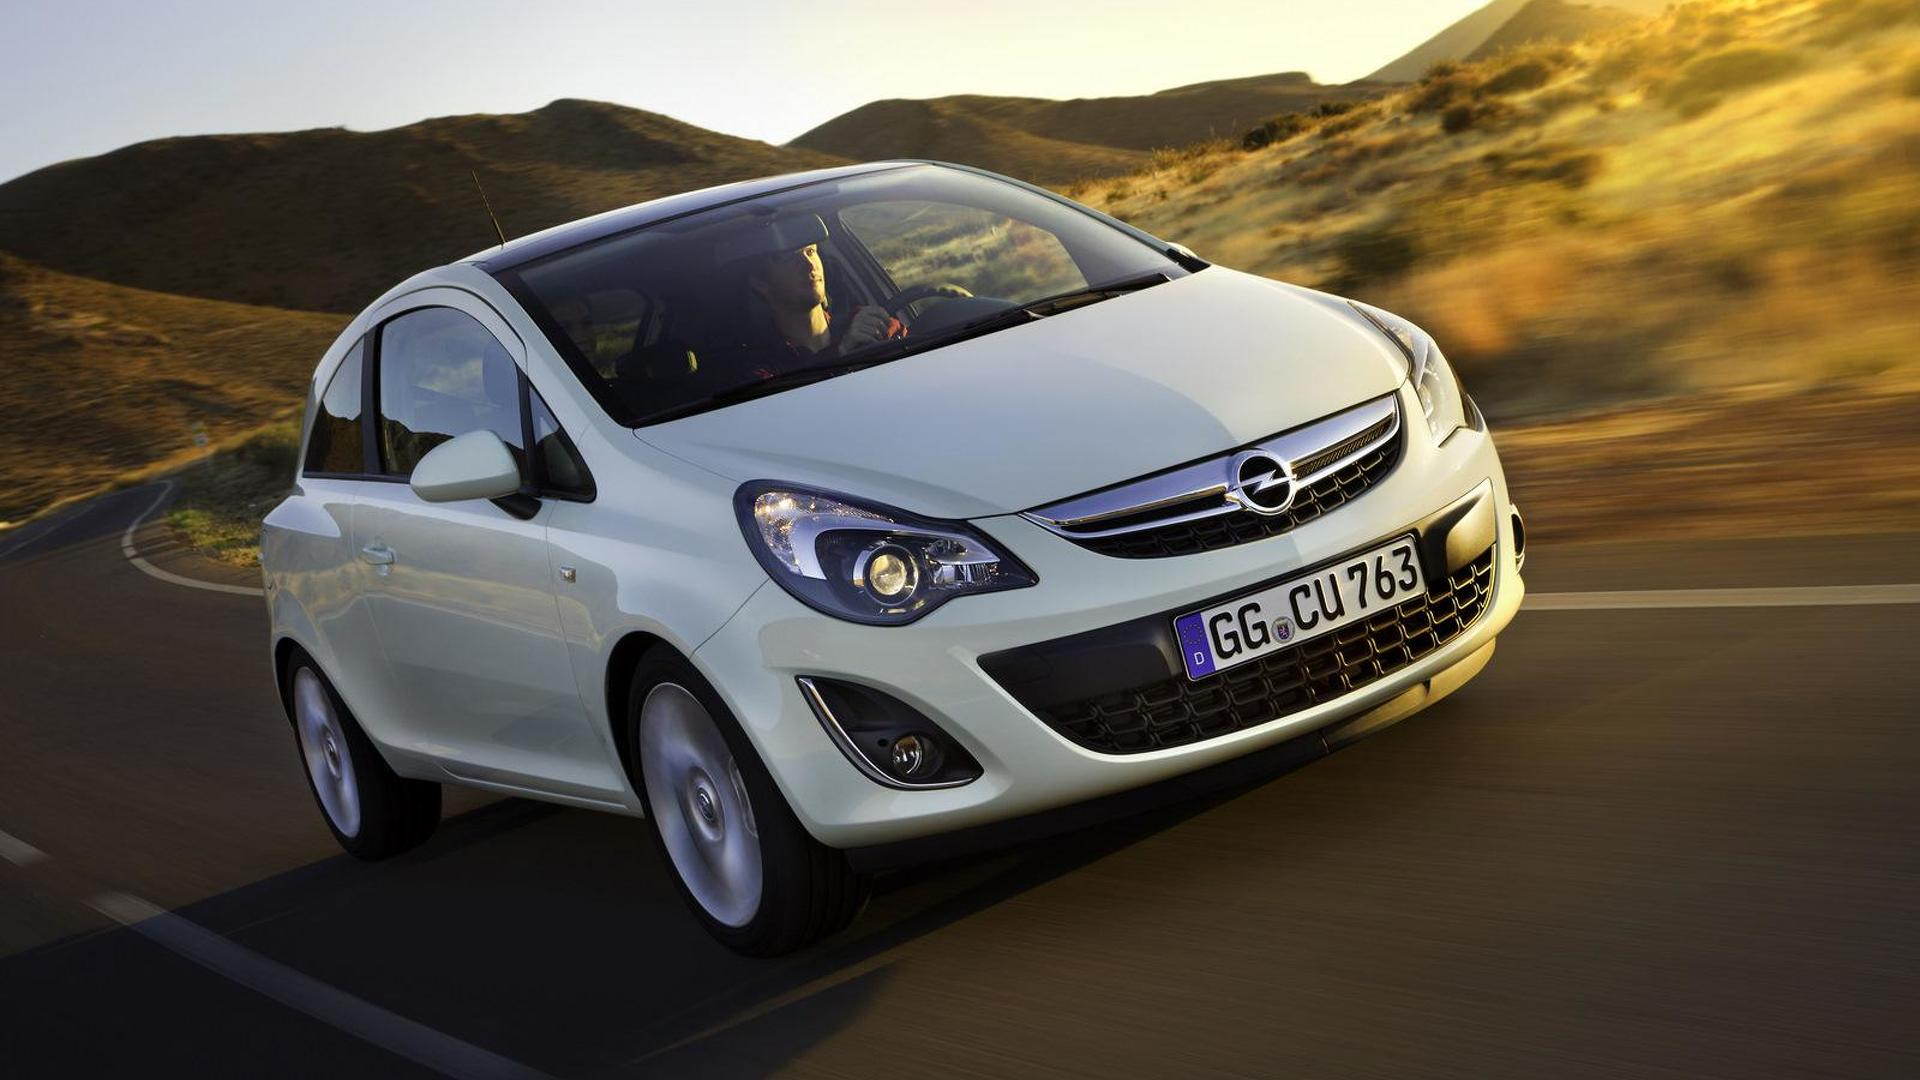 Opel Corsa 2010: beauty and style 19